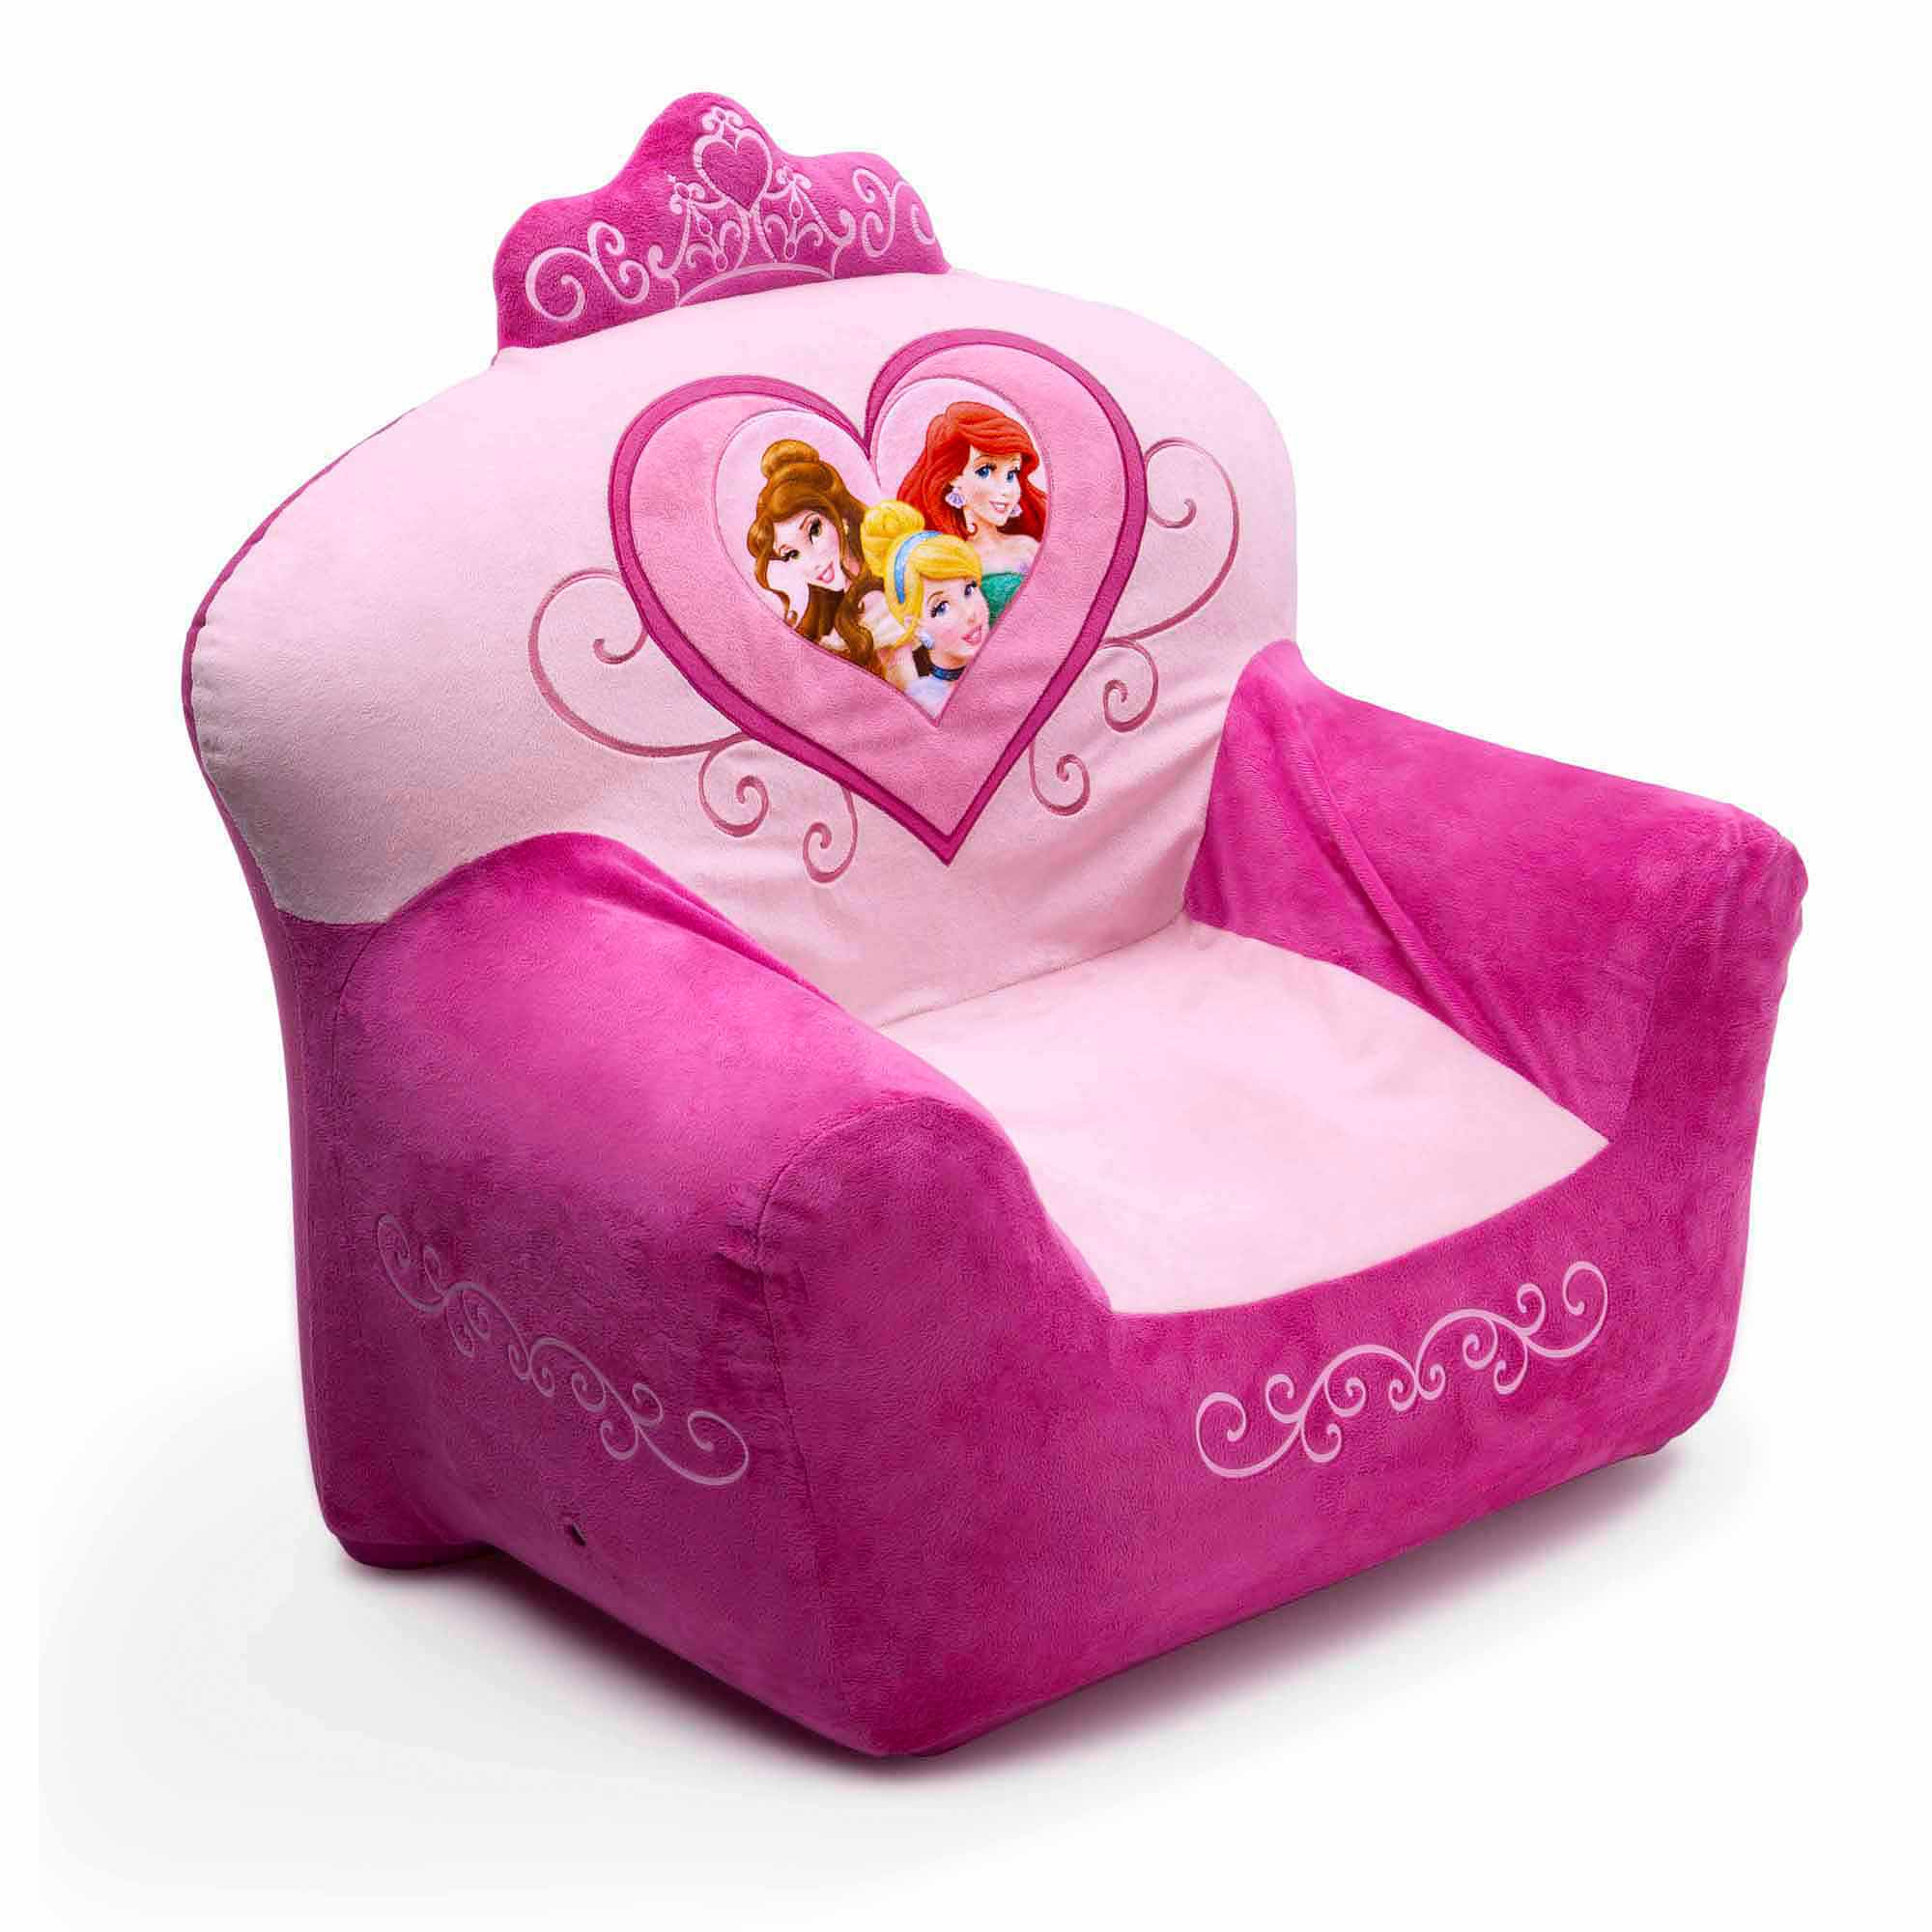 Disney Princess Club Chair   Walmart.com